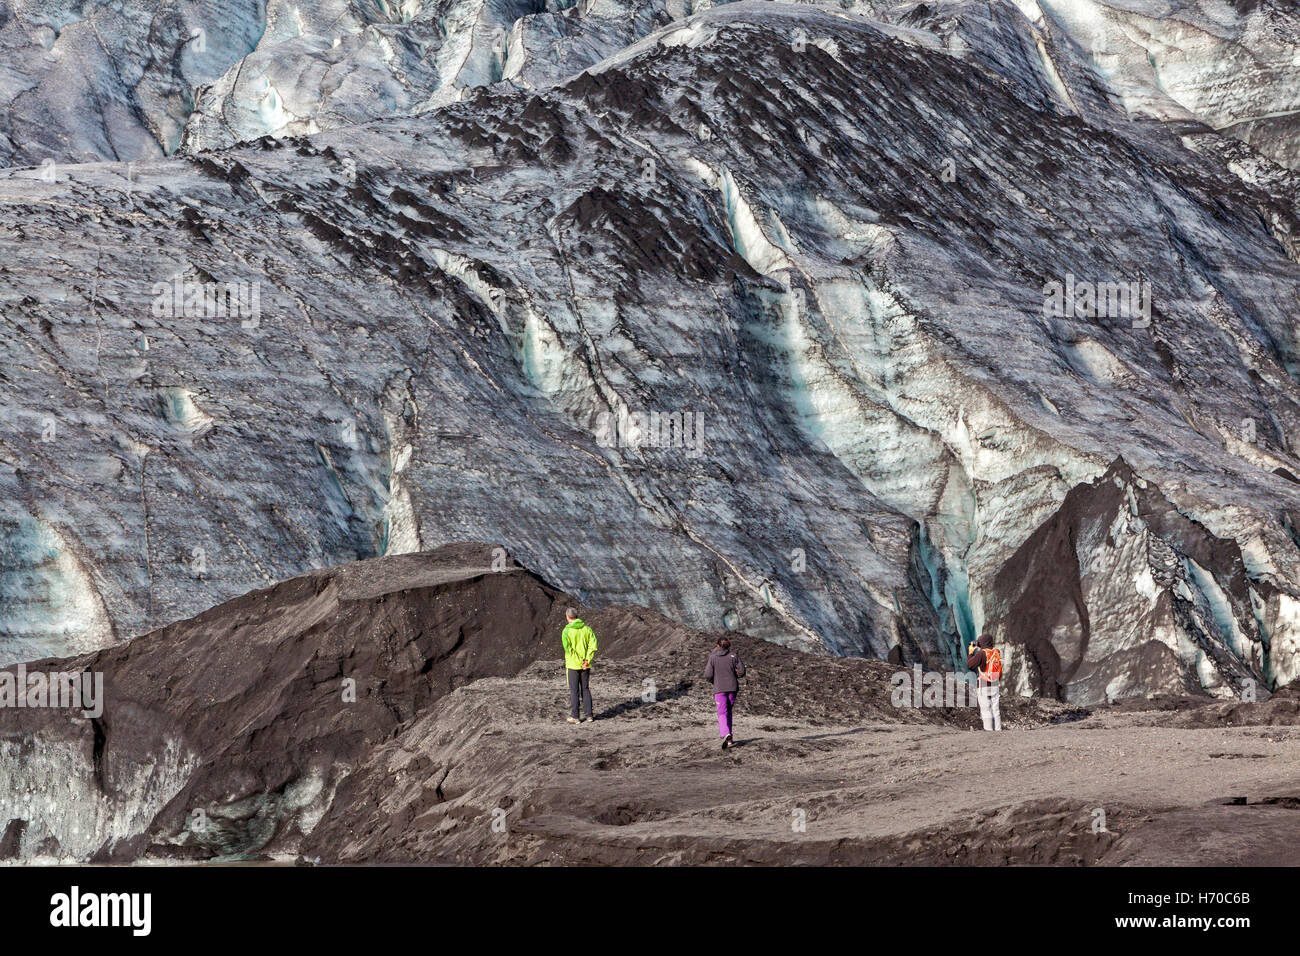 A view of the Solheimajokull Glacier in Iceland. - Stock Image